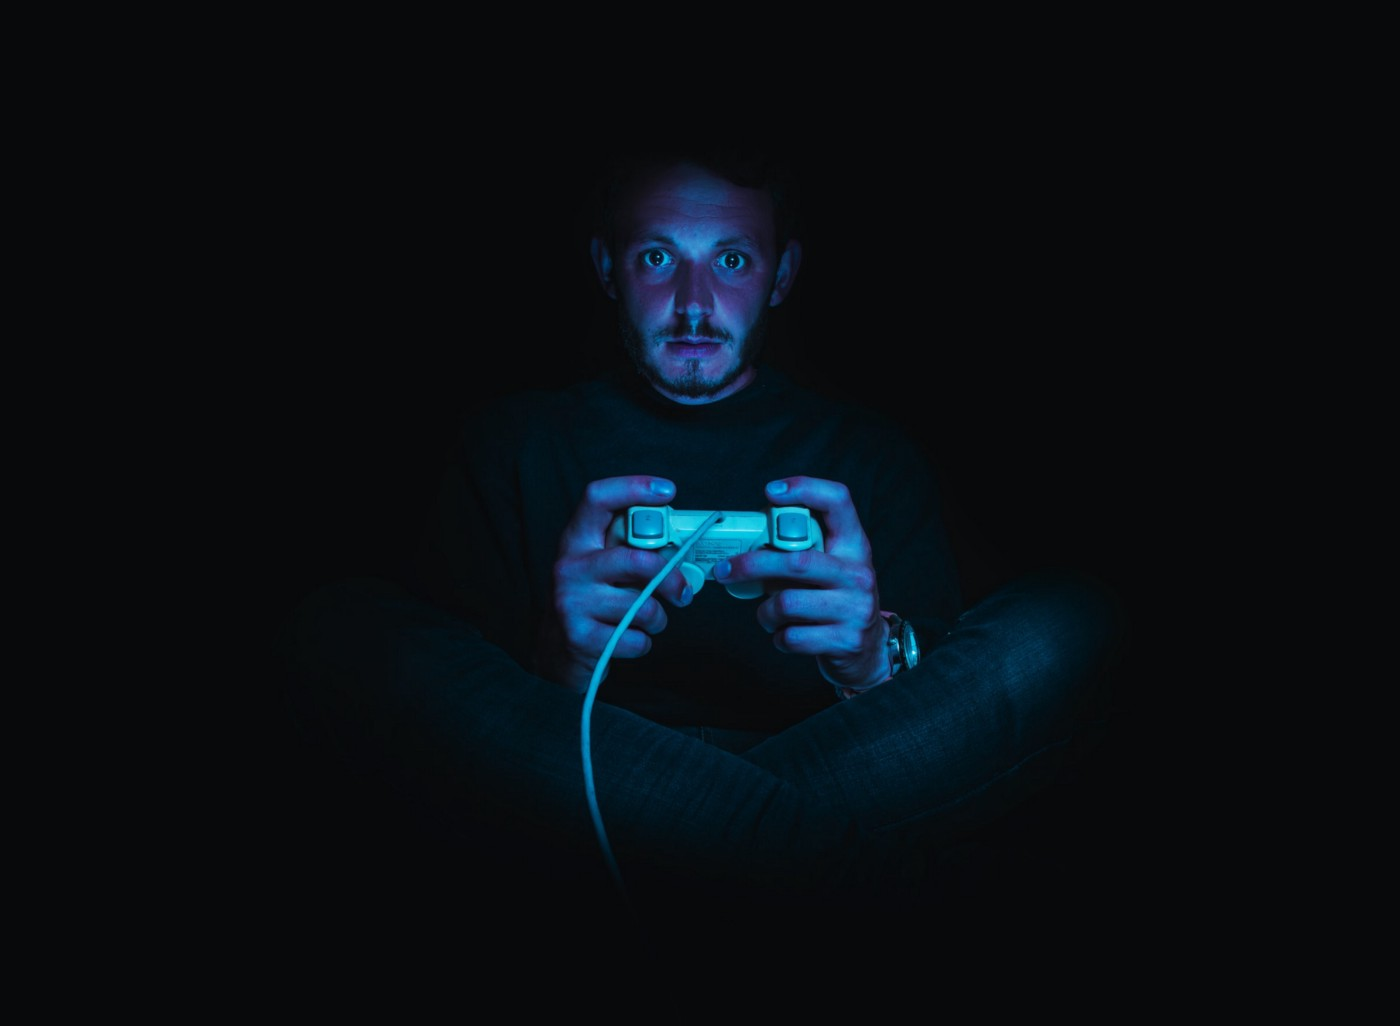 A frightened-looking man plays horror games in the dark.